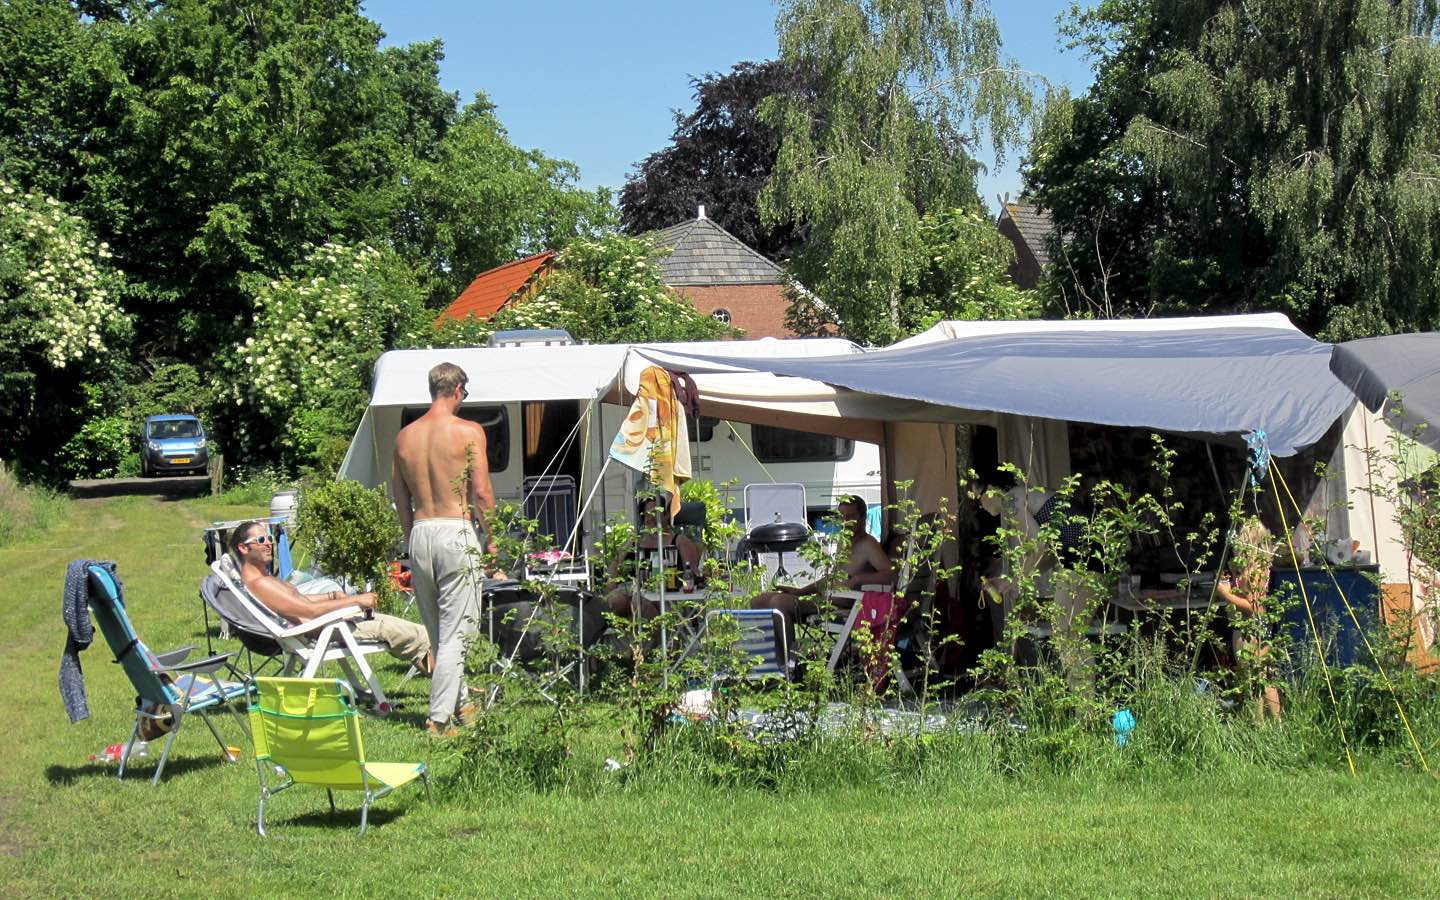 2 Pits Camping Gasstel Camping De Broekse Hoeve Groepsaccomodaties And Camping